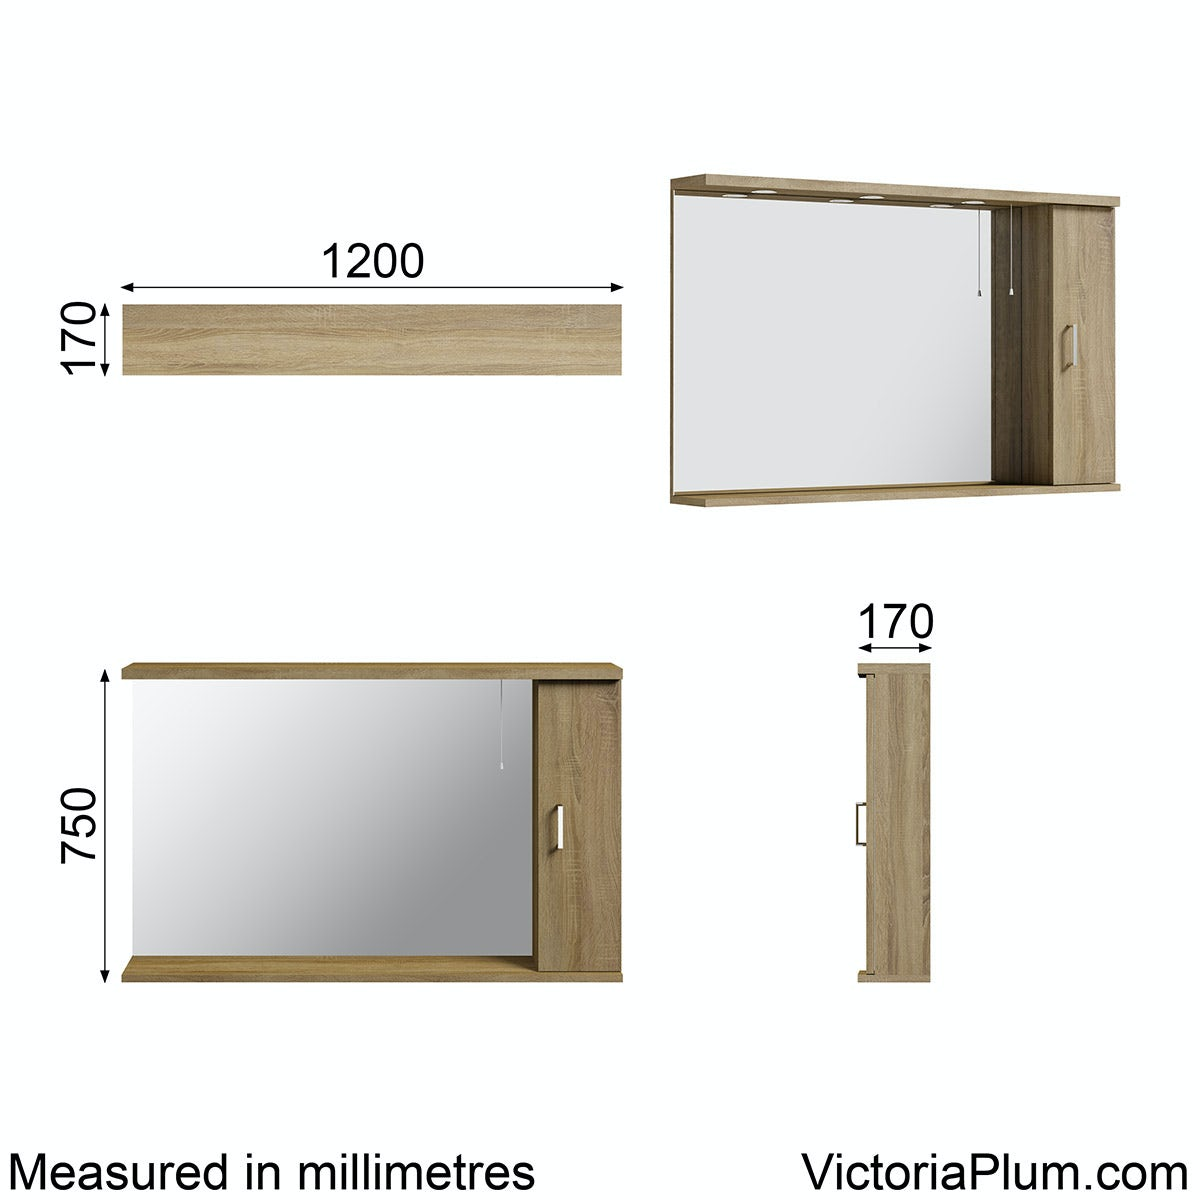 Dimensions for Orchard Eden oak illuminated mirror 1200mm